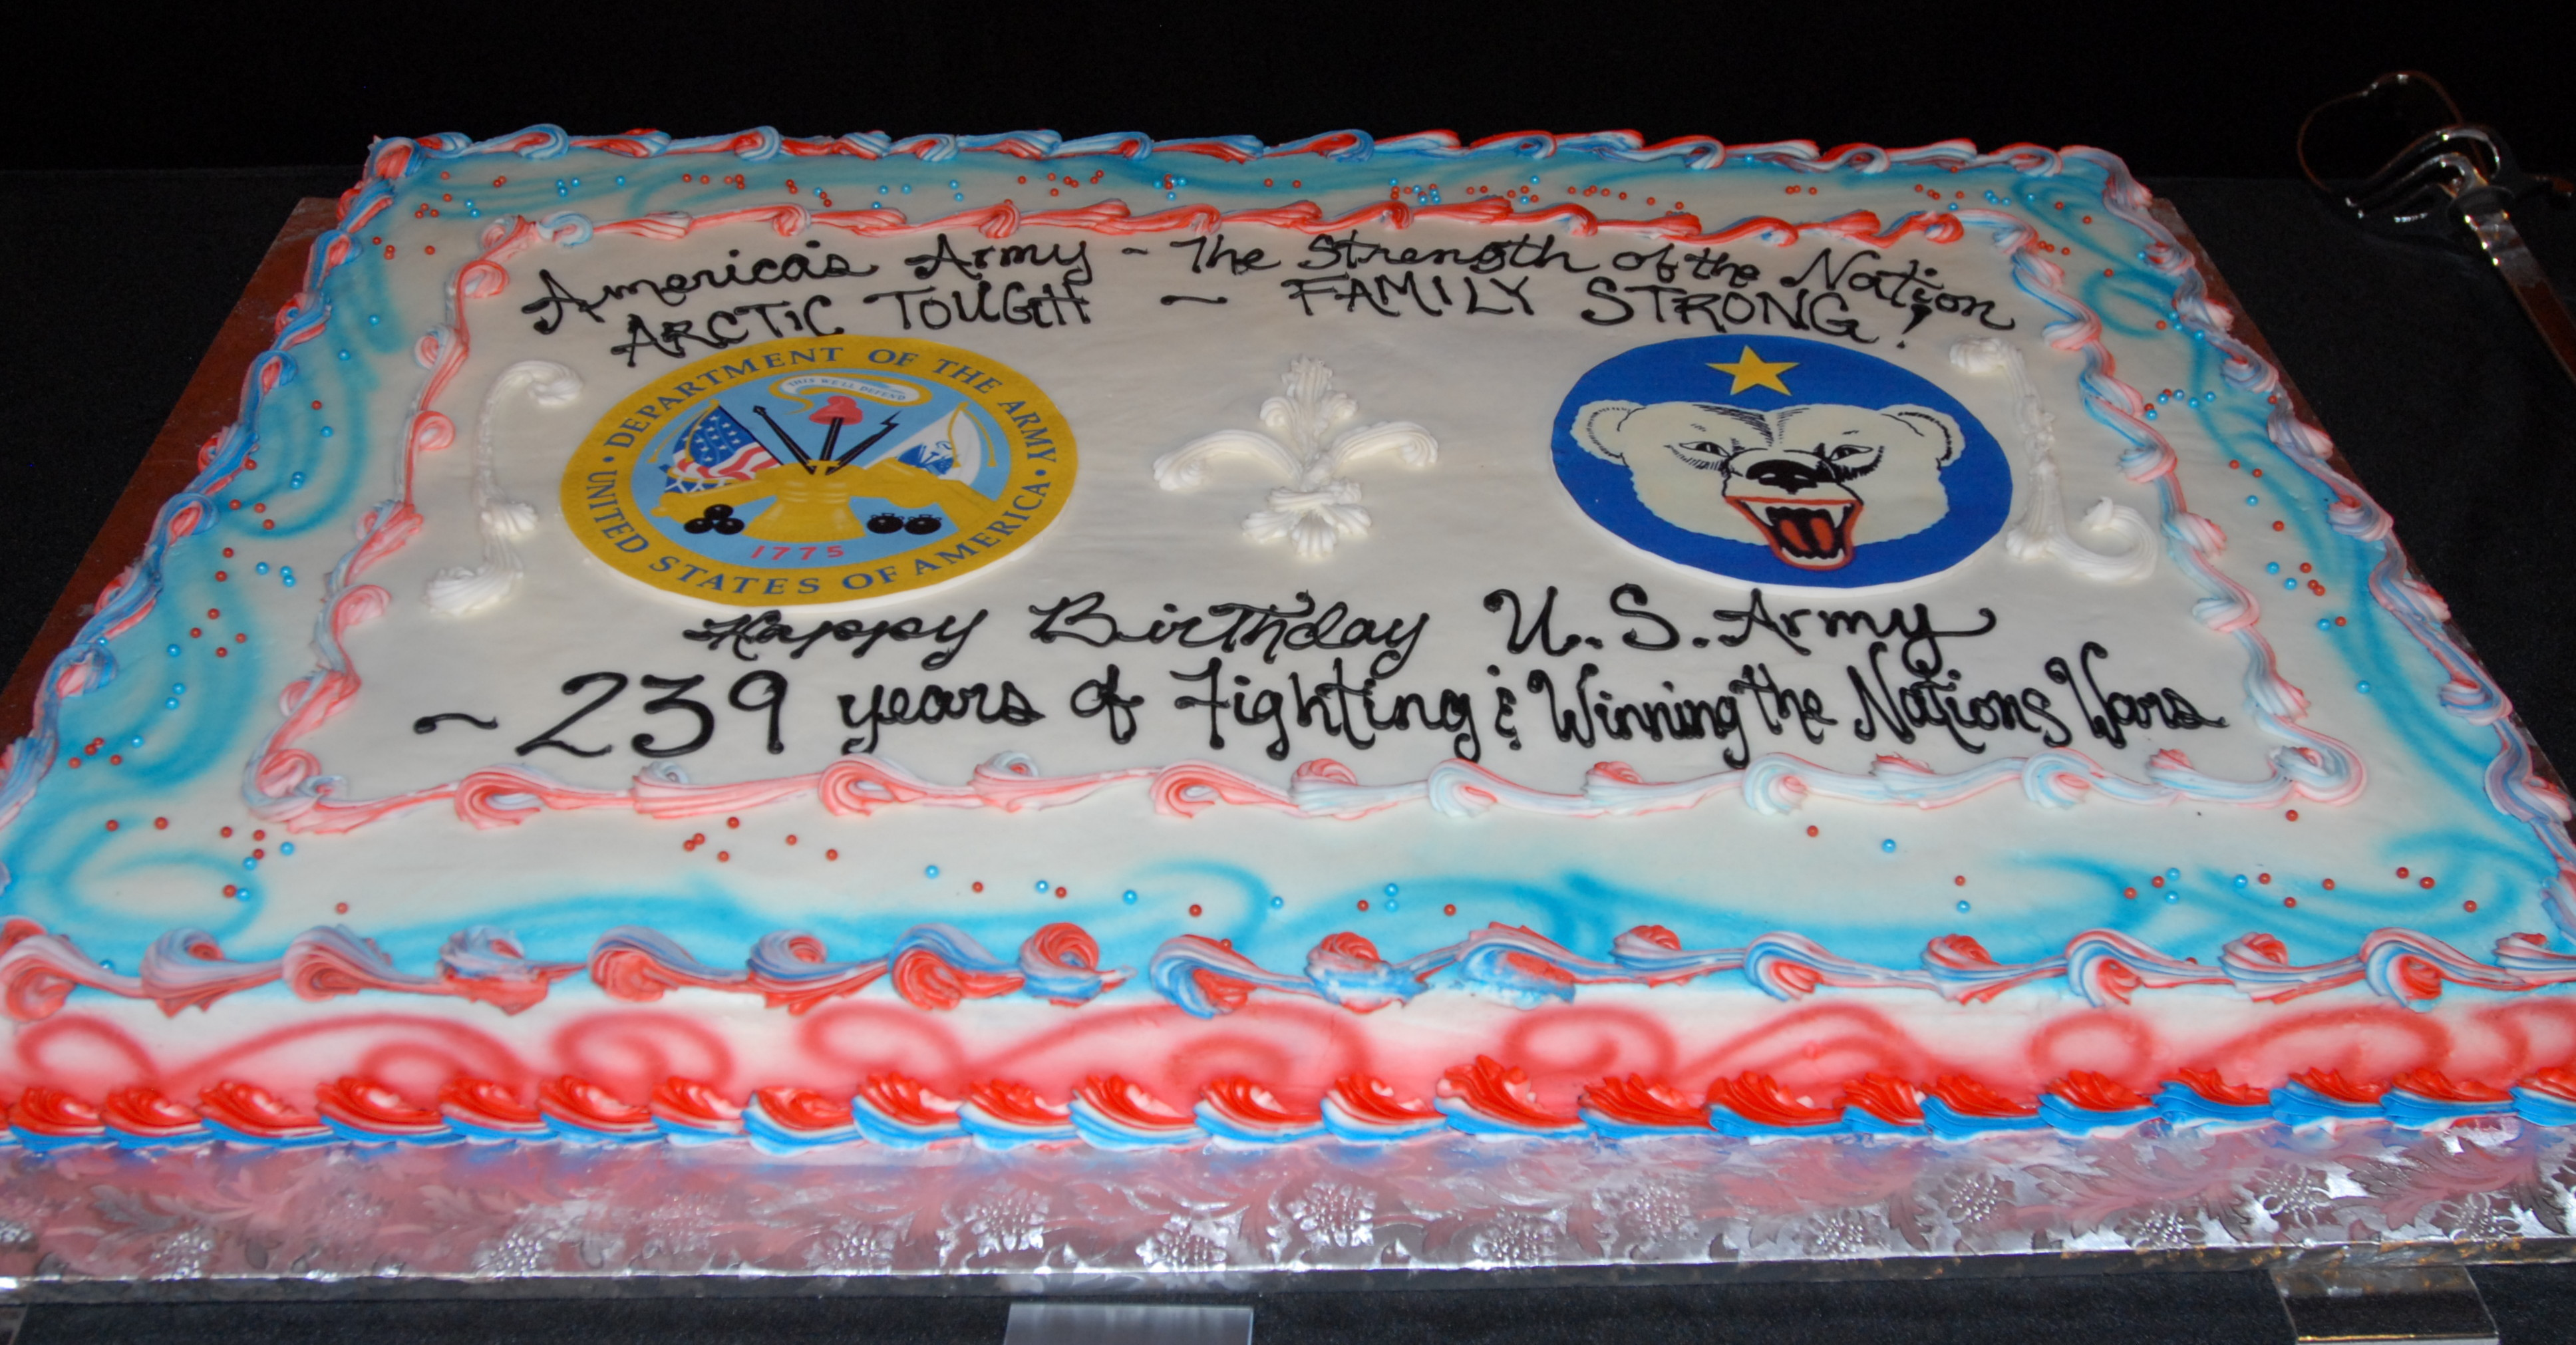 Fileus Army Alaska Celebrates 239 Years Of History At Army Birthday